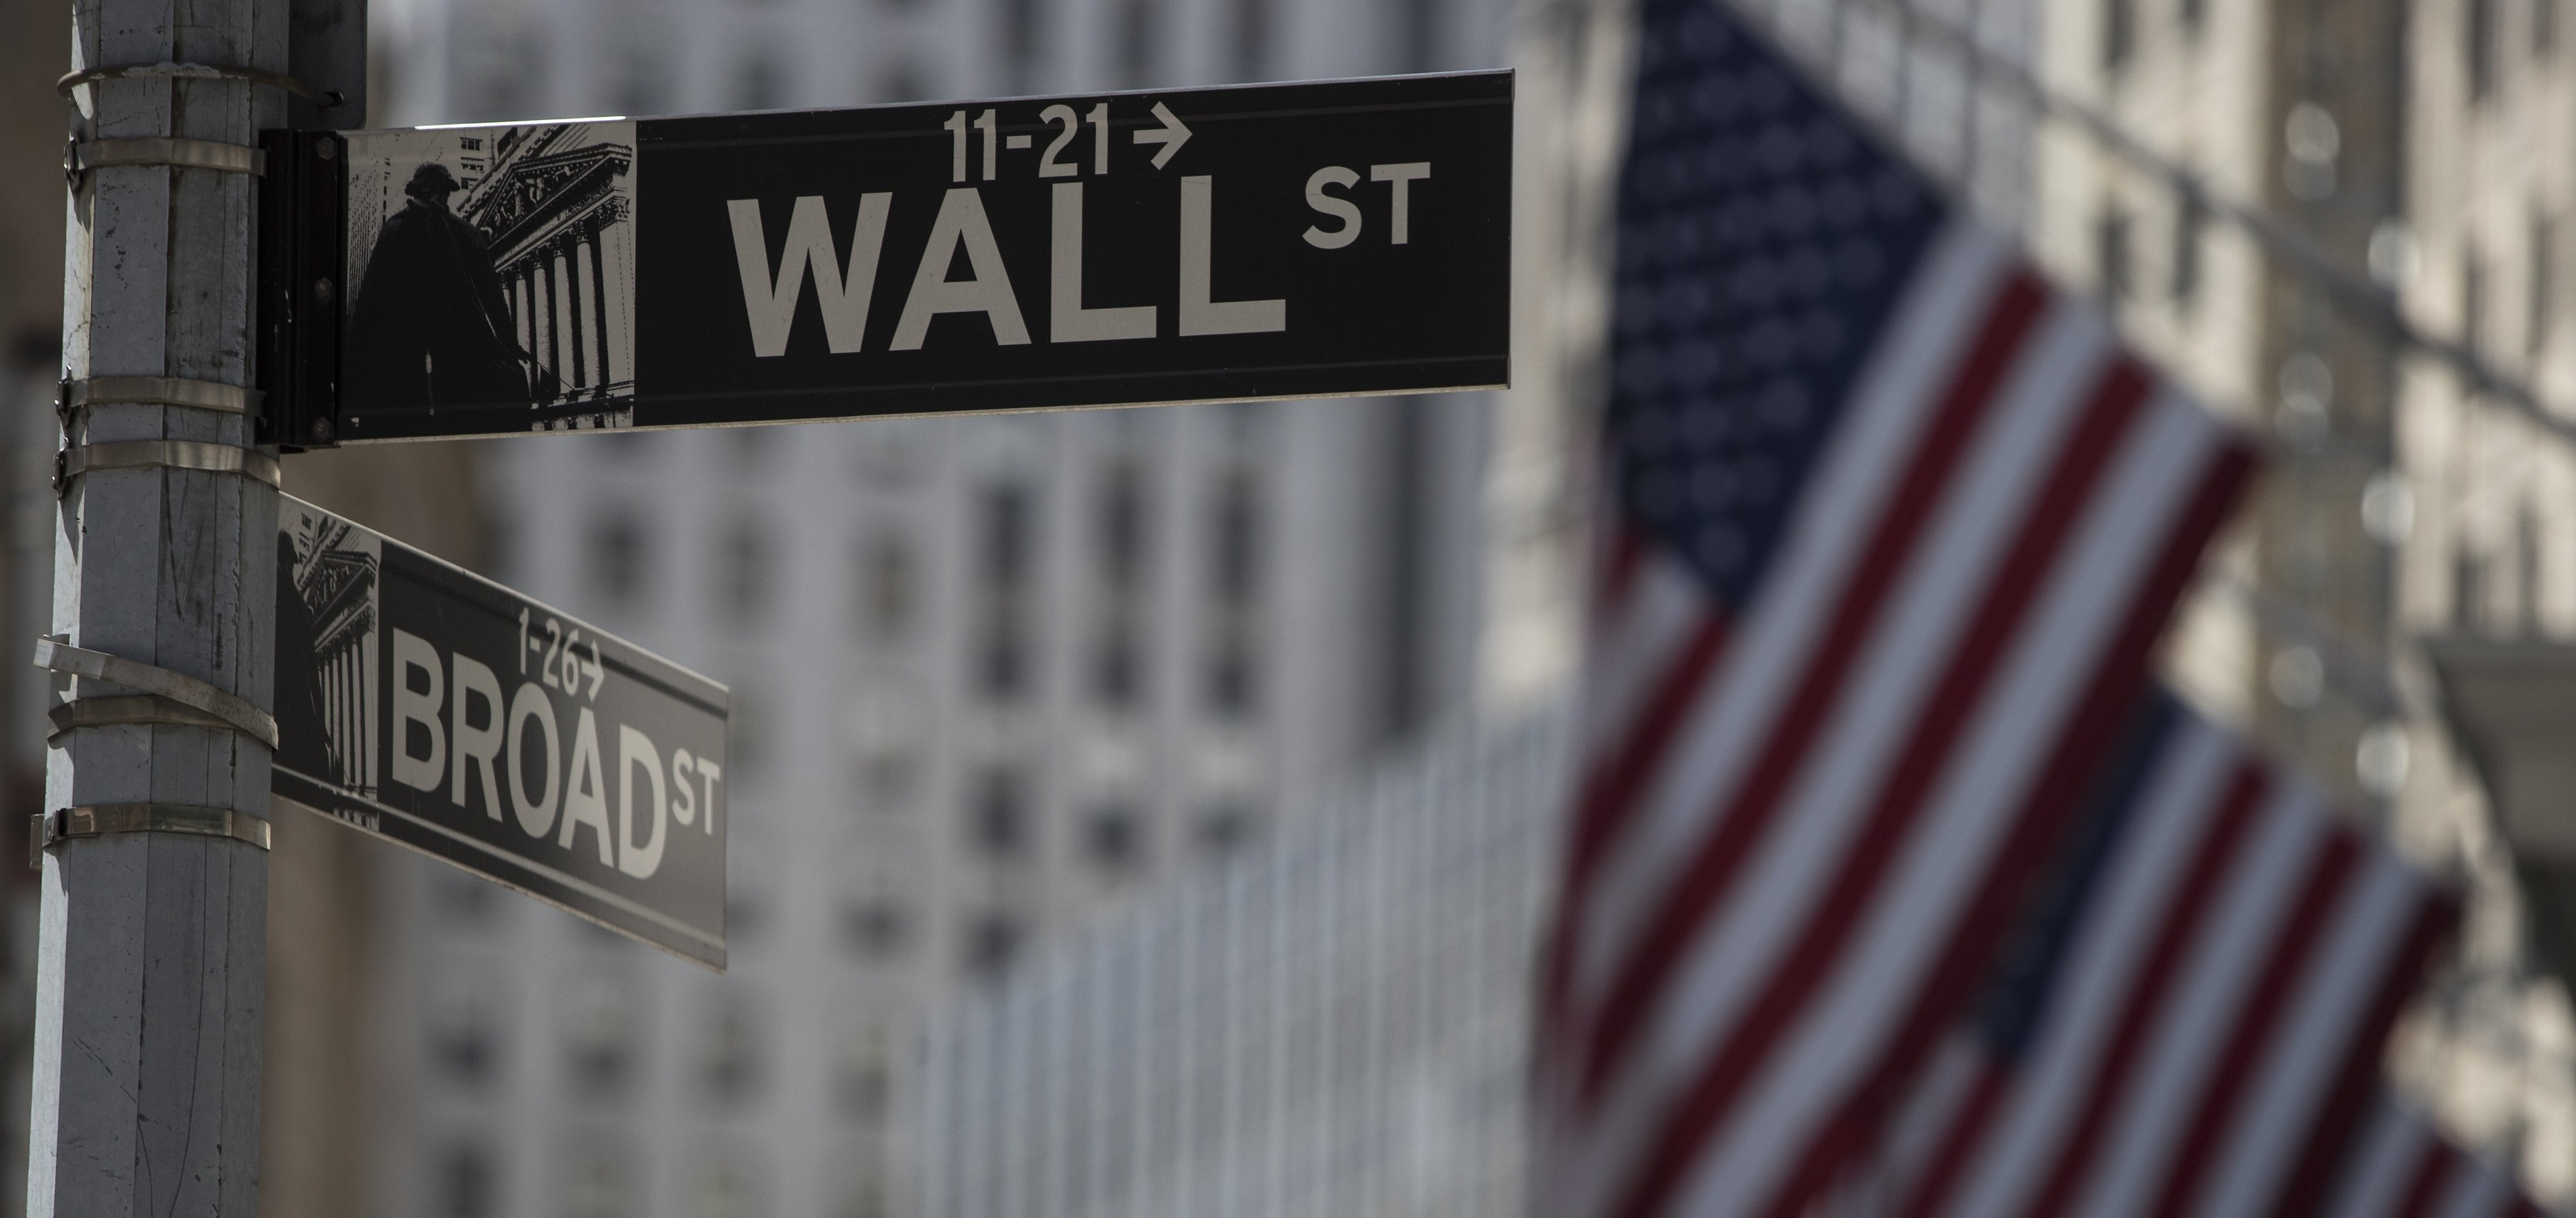 Wall Street indices started the week with declines after ...